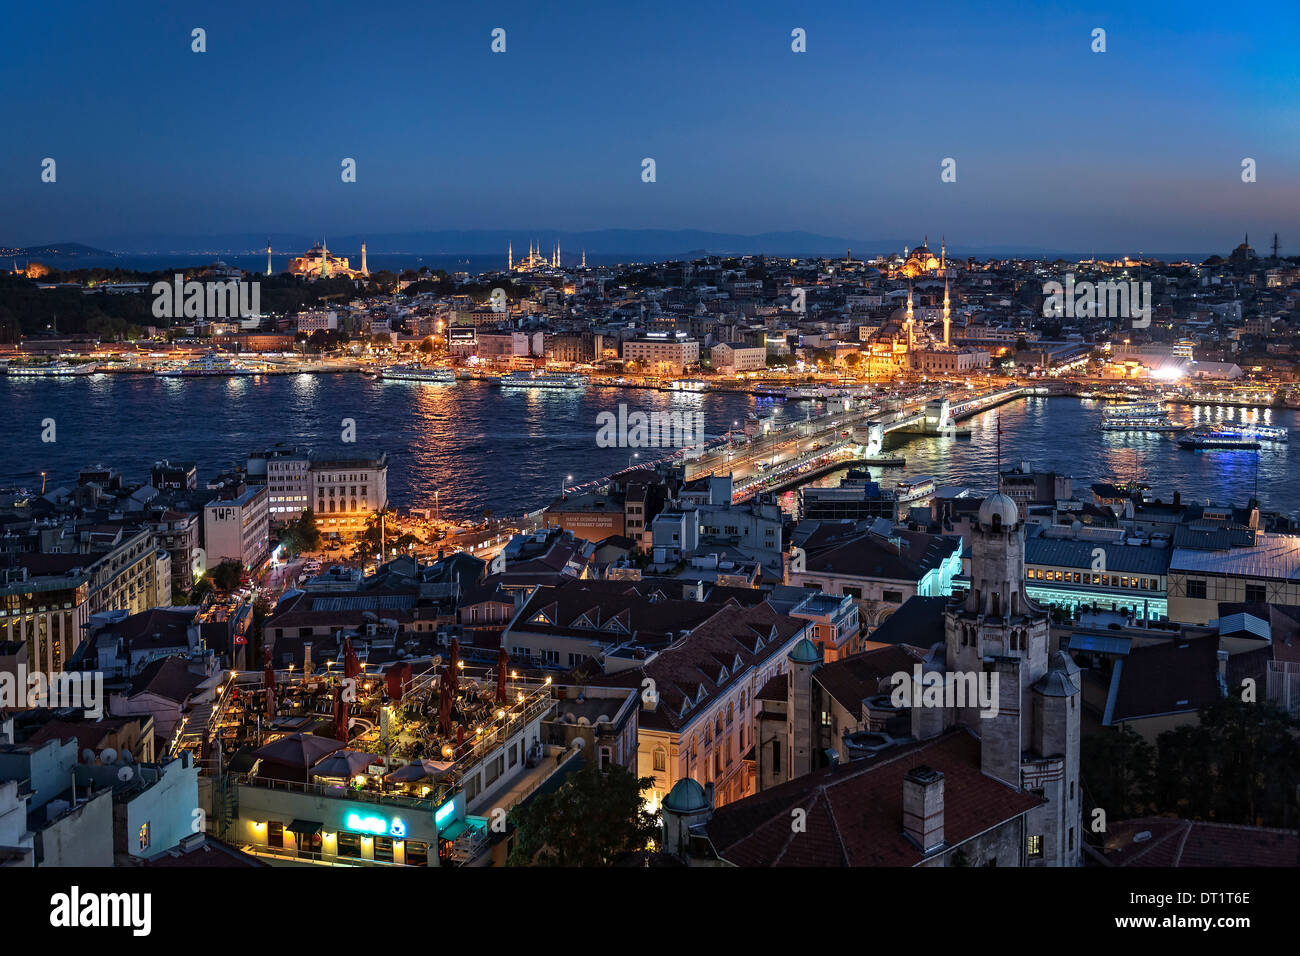 View over the Golden Horn with the Galata bridge. In the distance the Aya Sofya and the Blue Mosque mark the skyline. - Stock Image